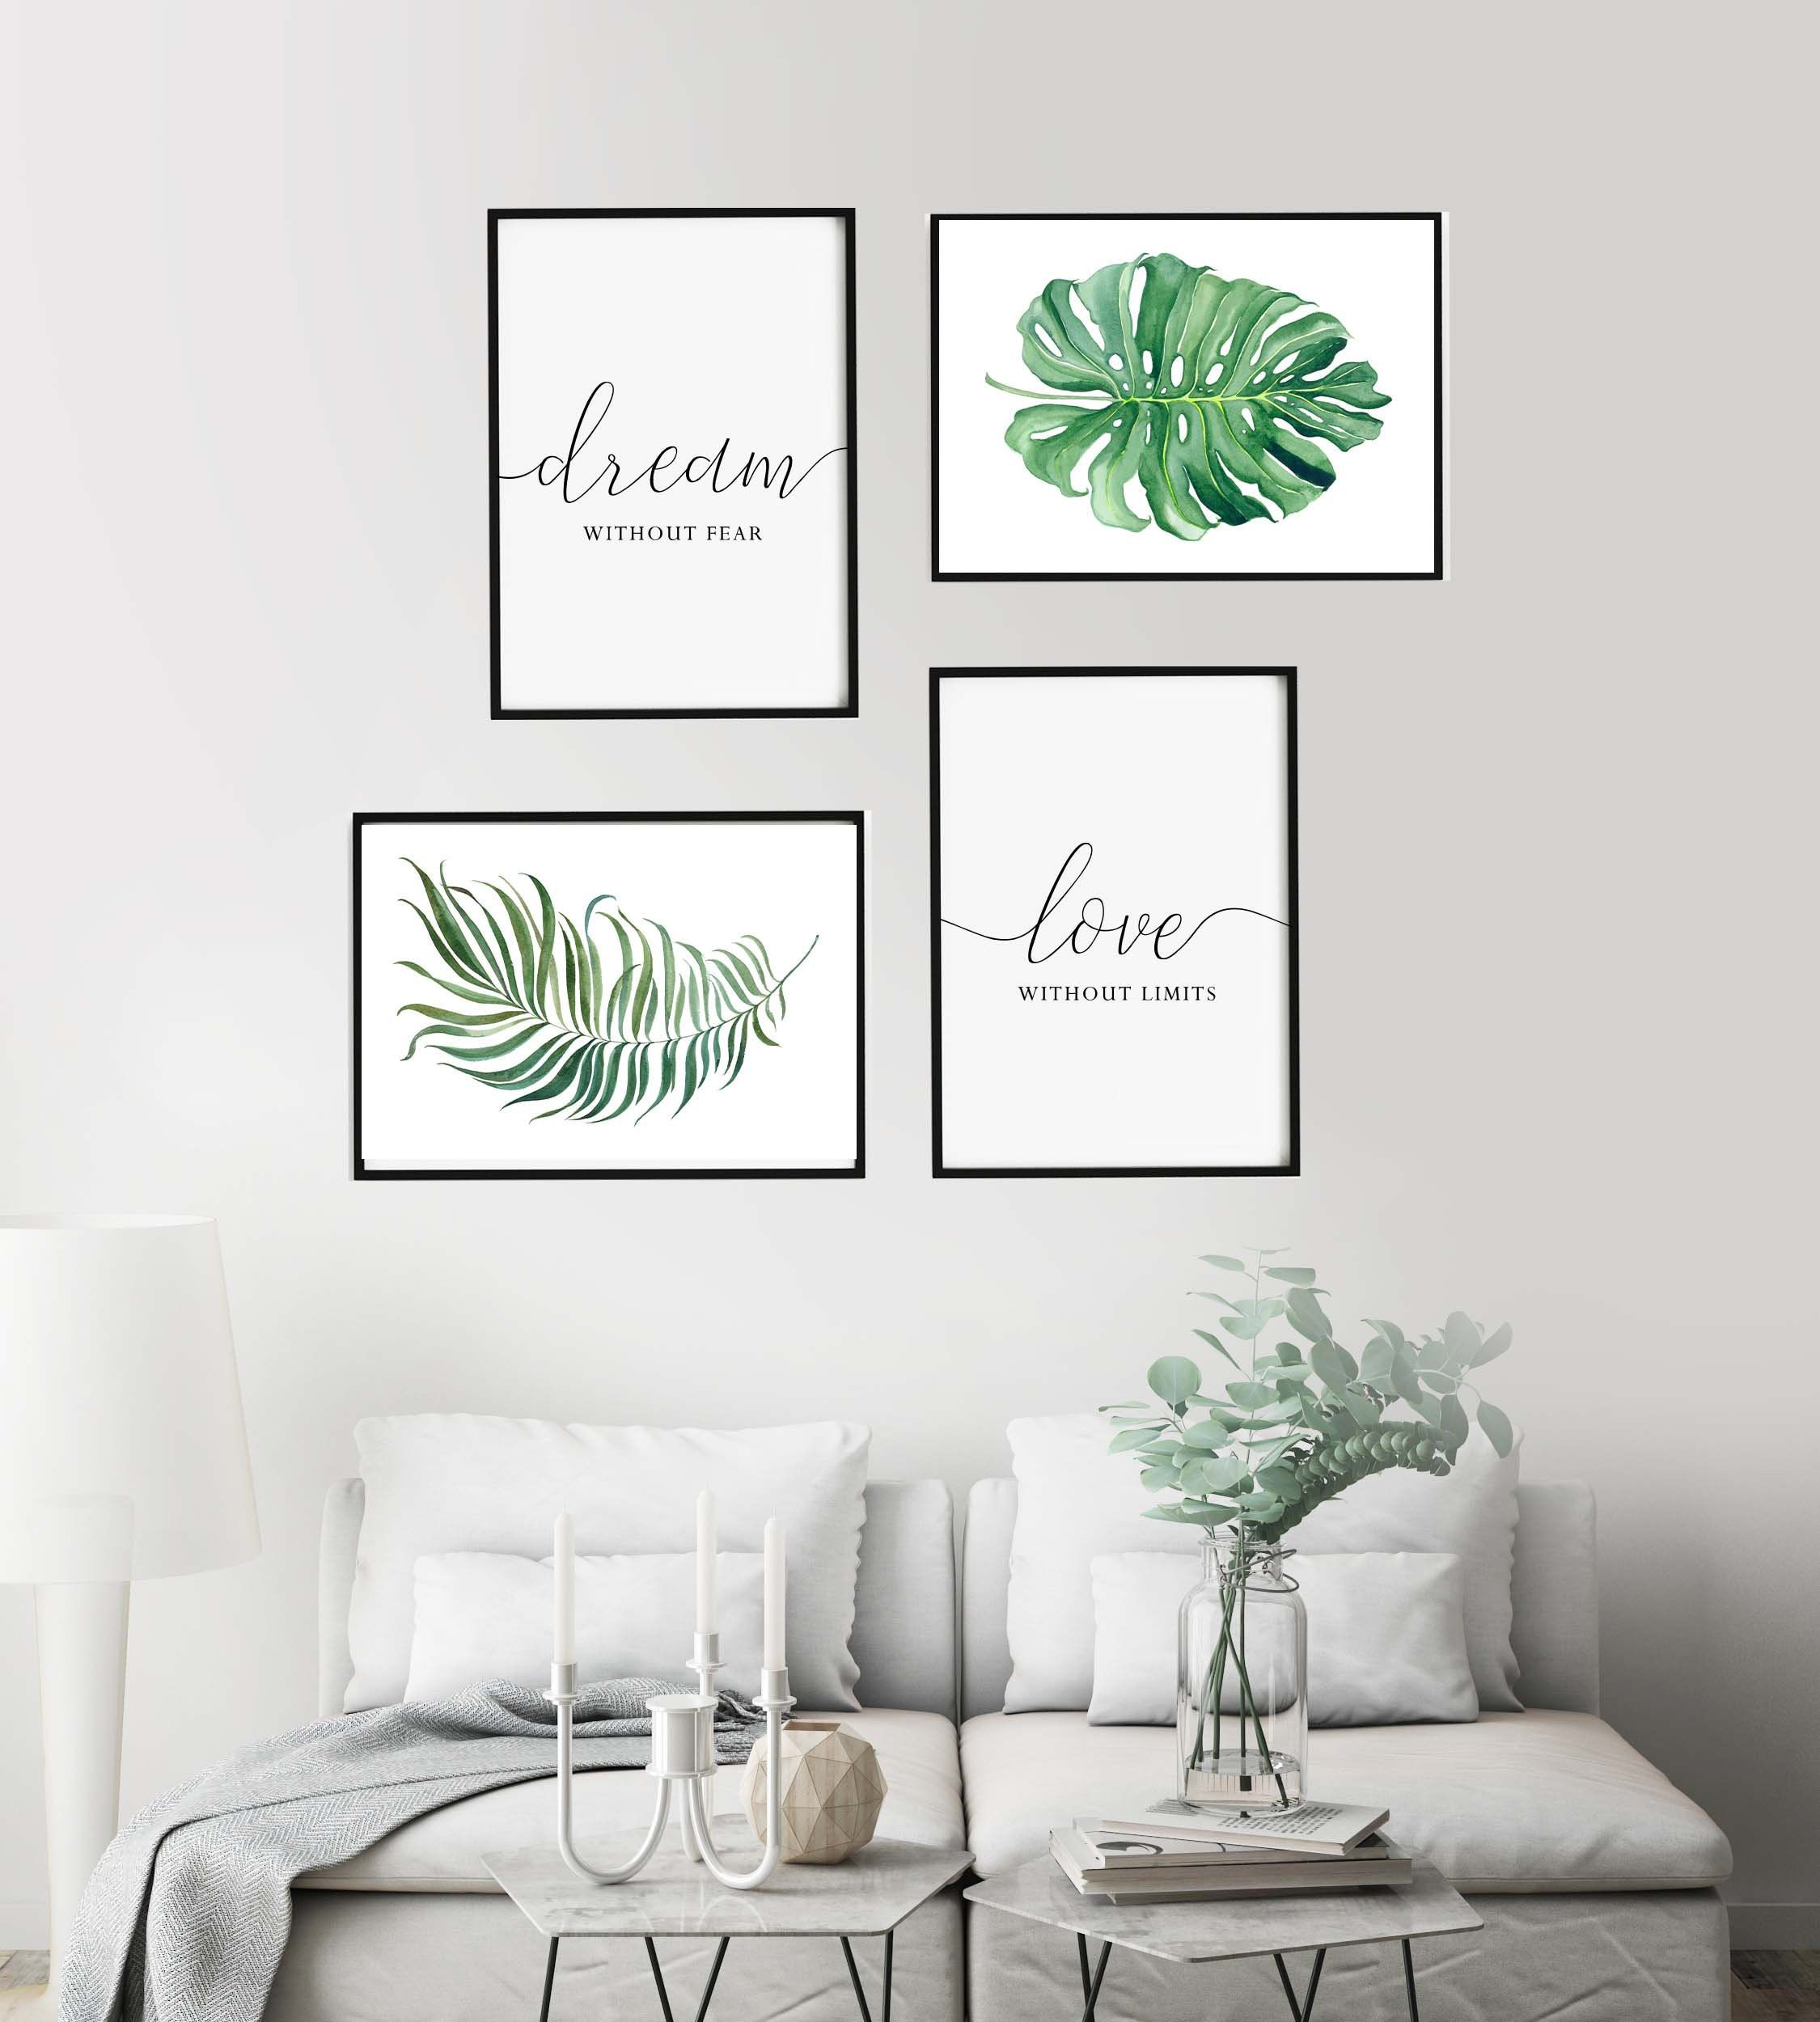 Set Of 4 Printsdream Without Fear Love Without Limitsliving Etsy Wall Decor Living Room Room Wall Decor Wall Printables #wall #ornaments #for #living #room